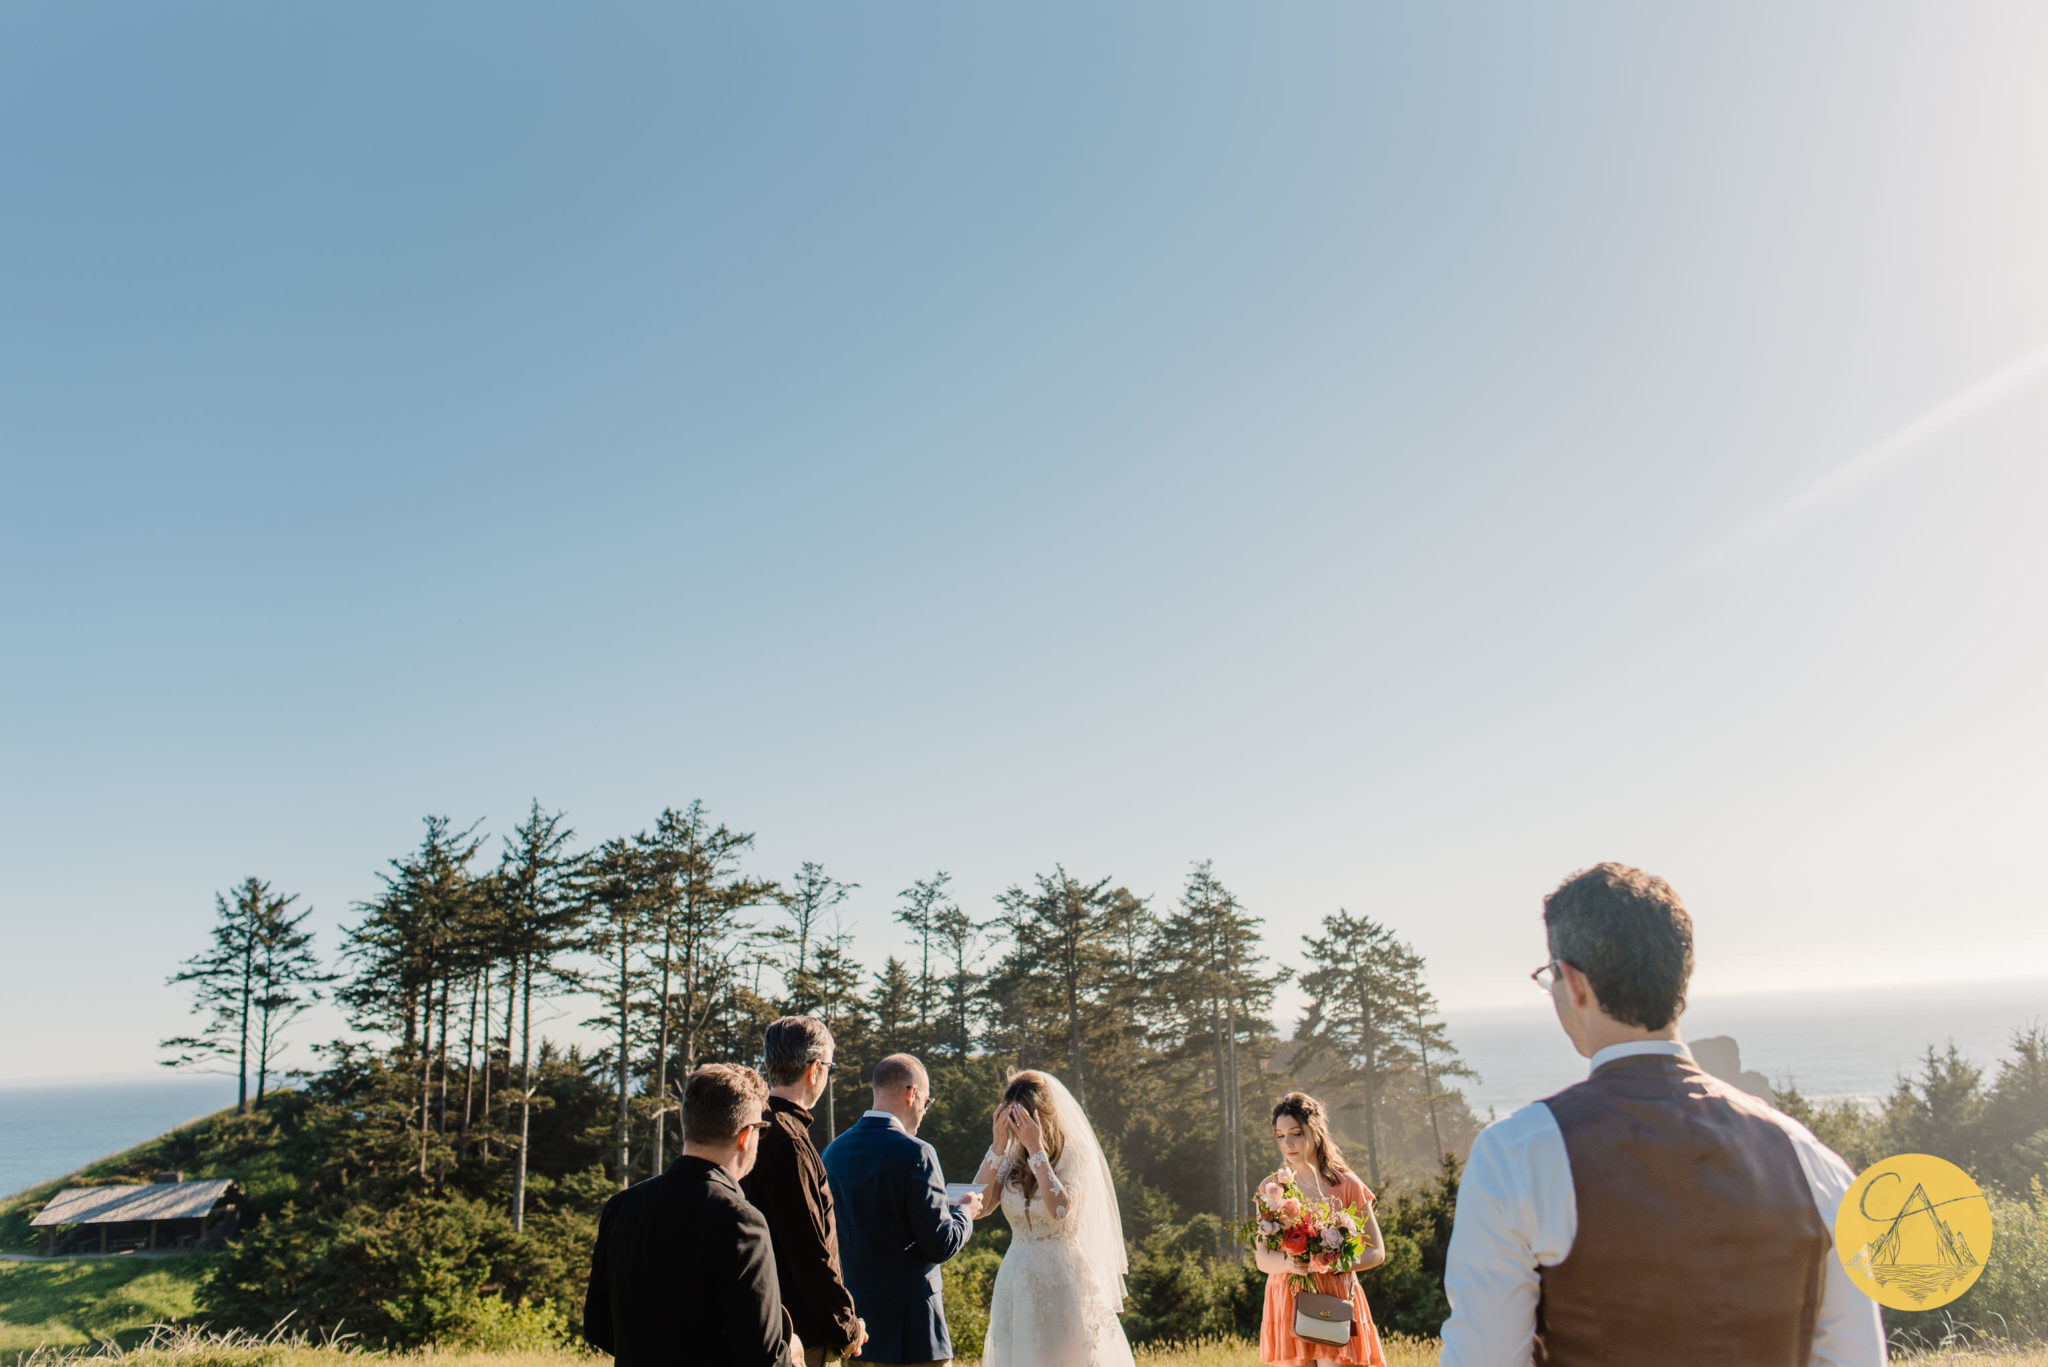 Ecola State Park wedding ceremony set up with the ocean an cliff in the background